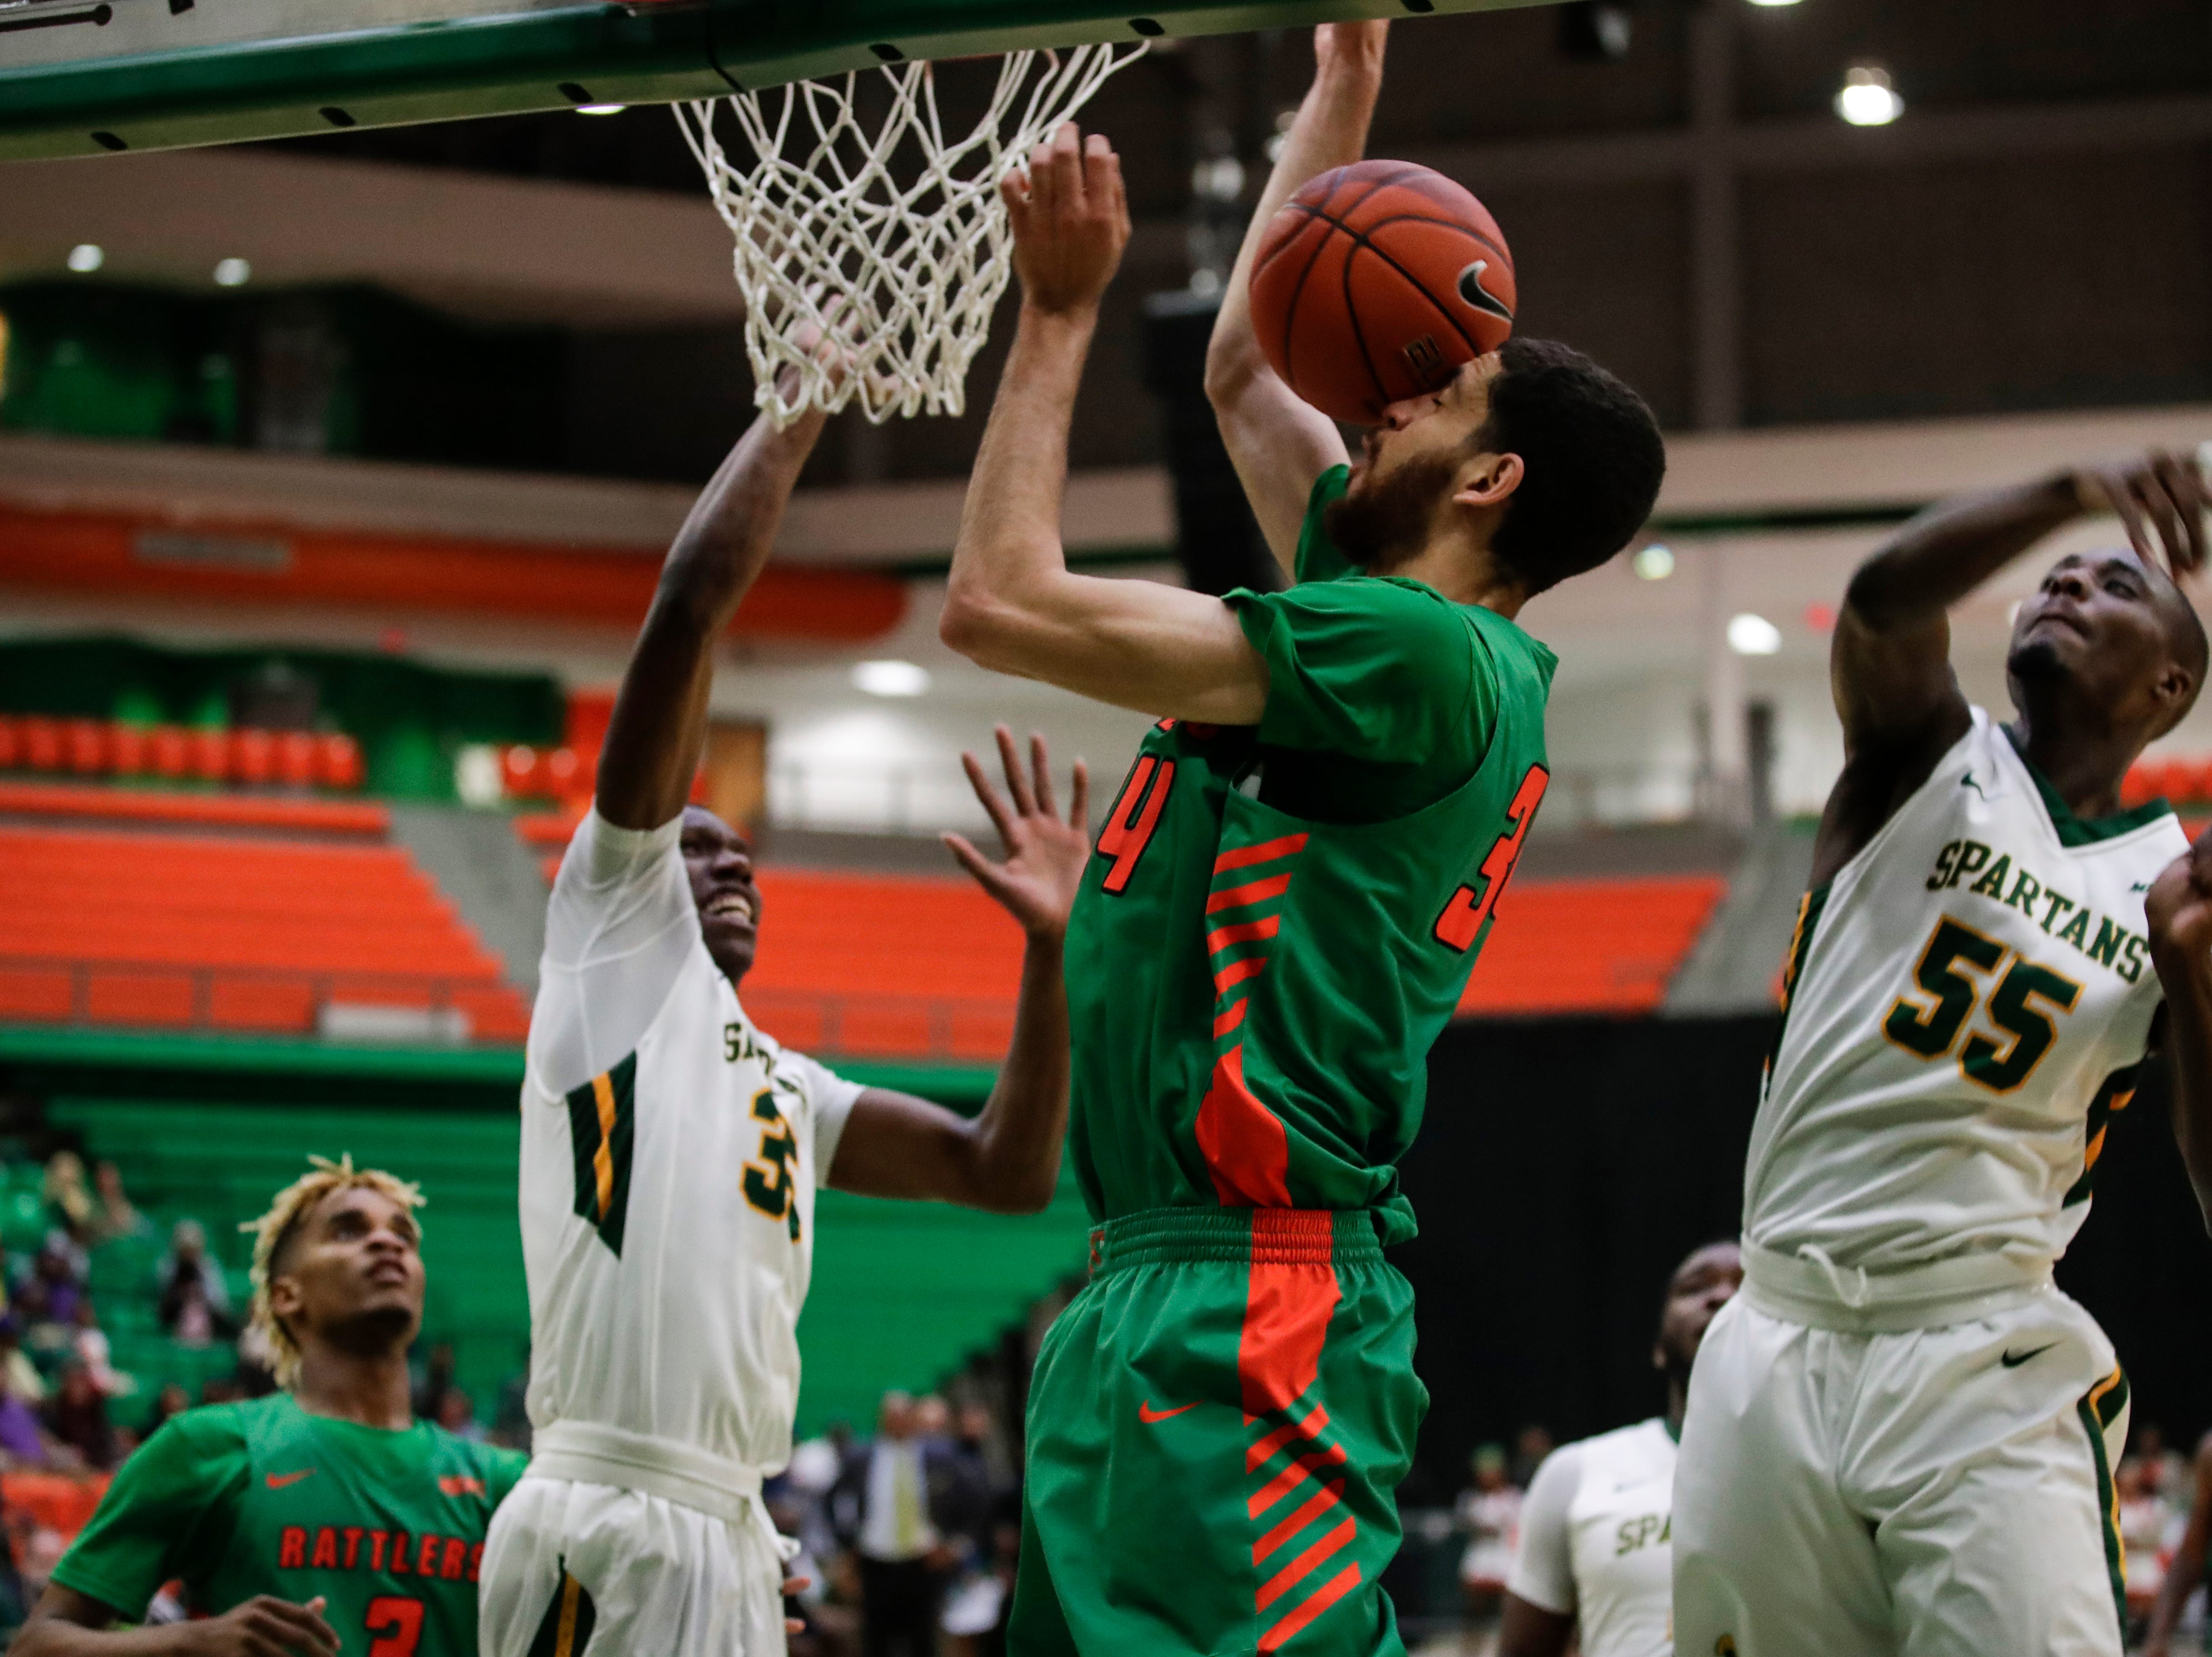 Florida A&M Rattlers center Isaiah Martin (34) gets a shot blocked during a game between FAMU and Norfolk State at the Alfred Lawson Jr. Multipurpose Center Monday, Feb. 11, 2019.